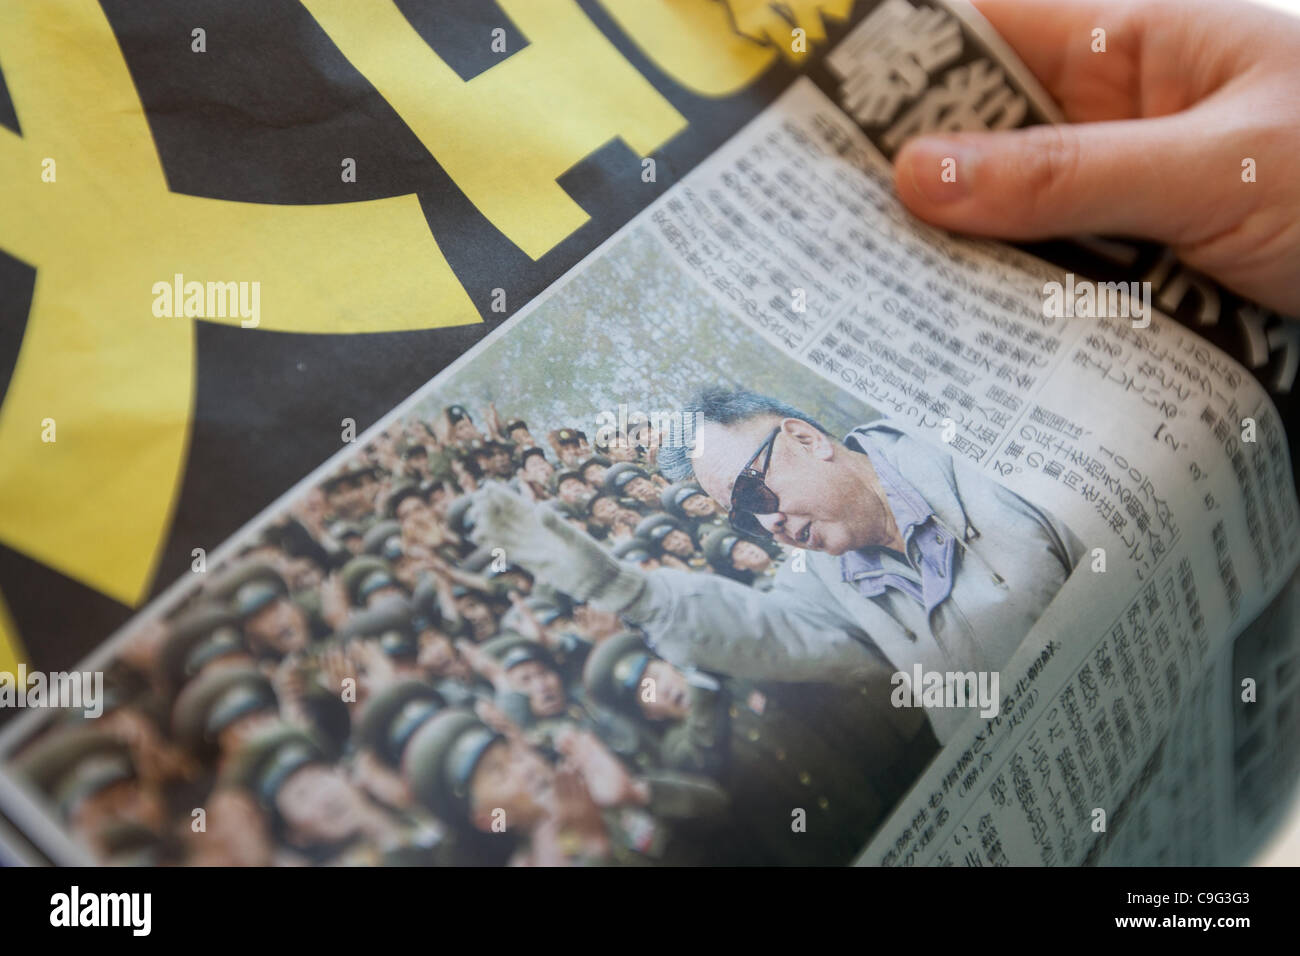 Images of North Korean President Kim Jong-Il appear in Japanese newspapers in the wake of his death and the transition - Stock Image